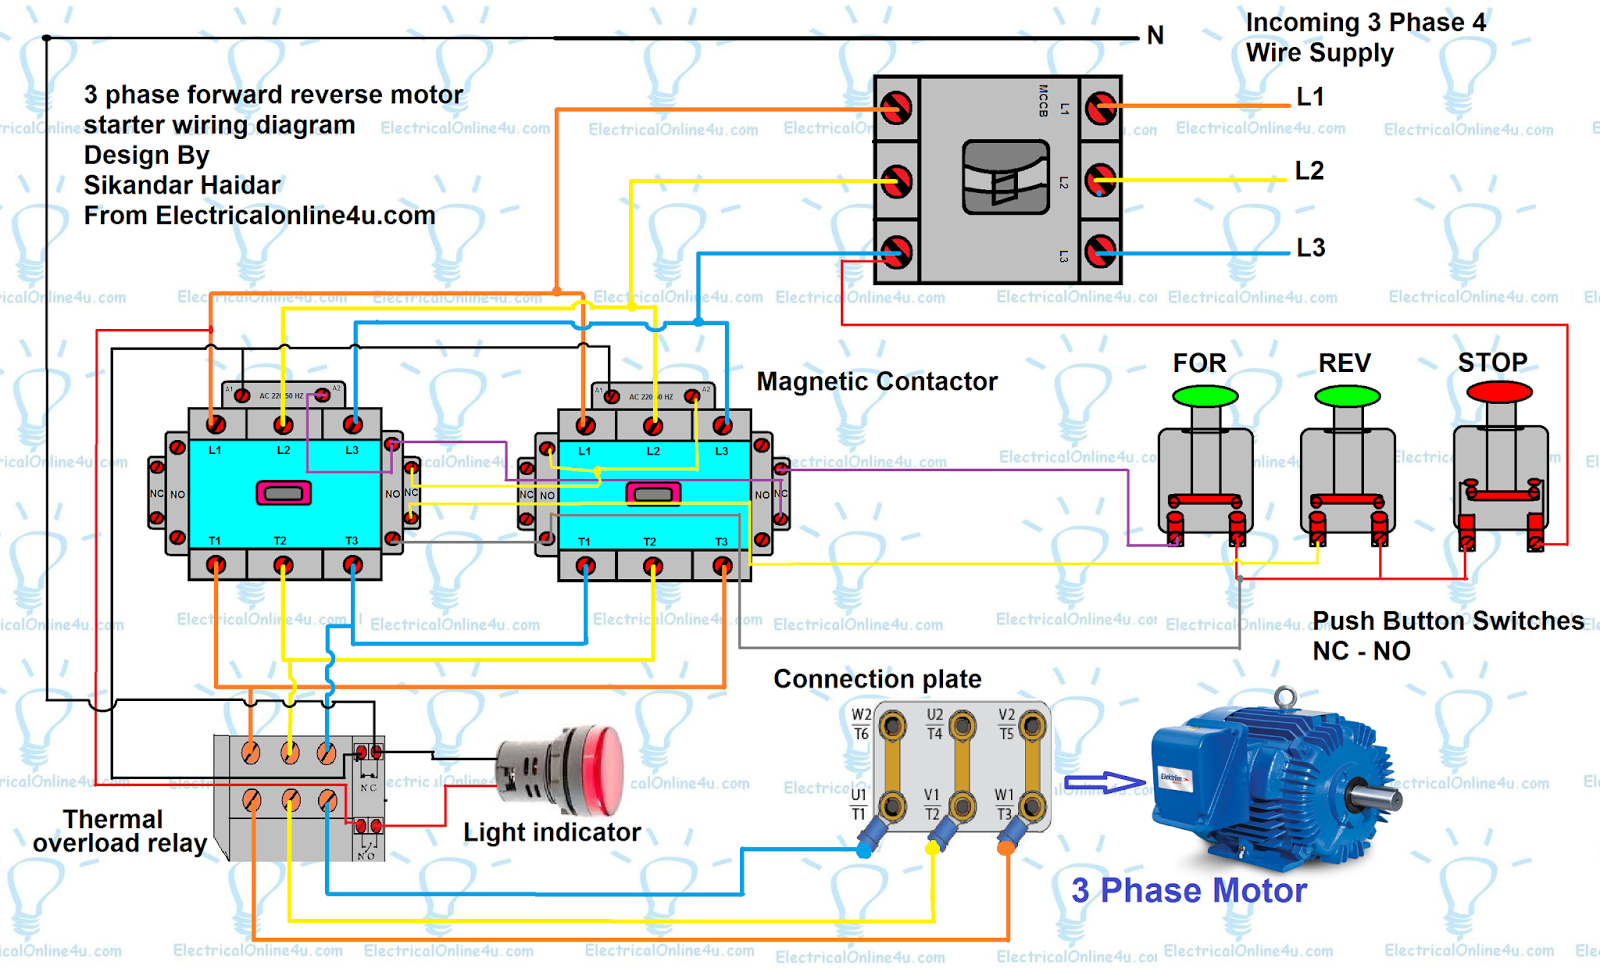 Forward Reverse Motor Control Diagram For 3 Phase Motor - Electrical on transformer diagrams, electrical diagrams, snatch block diagrams, sincgars radio configurations diagrams, motor diagrams, hvac diagrams, gmc fuse box diagrams, lighting diagrams, smart car diagrams, electronic circuit diagrams, friendship bracelet diagrams, series and parallel circuits diagrams, troubleshooting diagrams, battery diagrams, internet of things diagrams, pinout diagrams, led circuit diagrams, engine diagrams, honda motorcycle repair diagrams, switch diagrams,